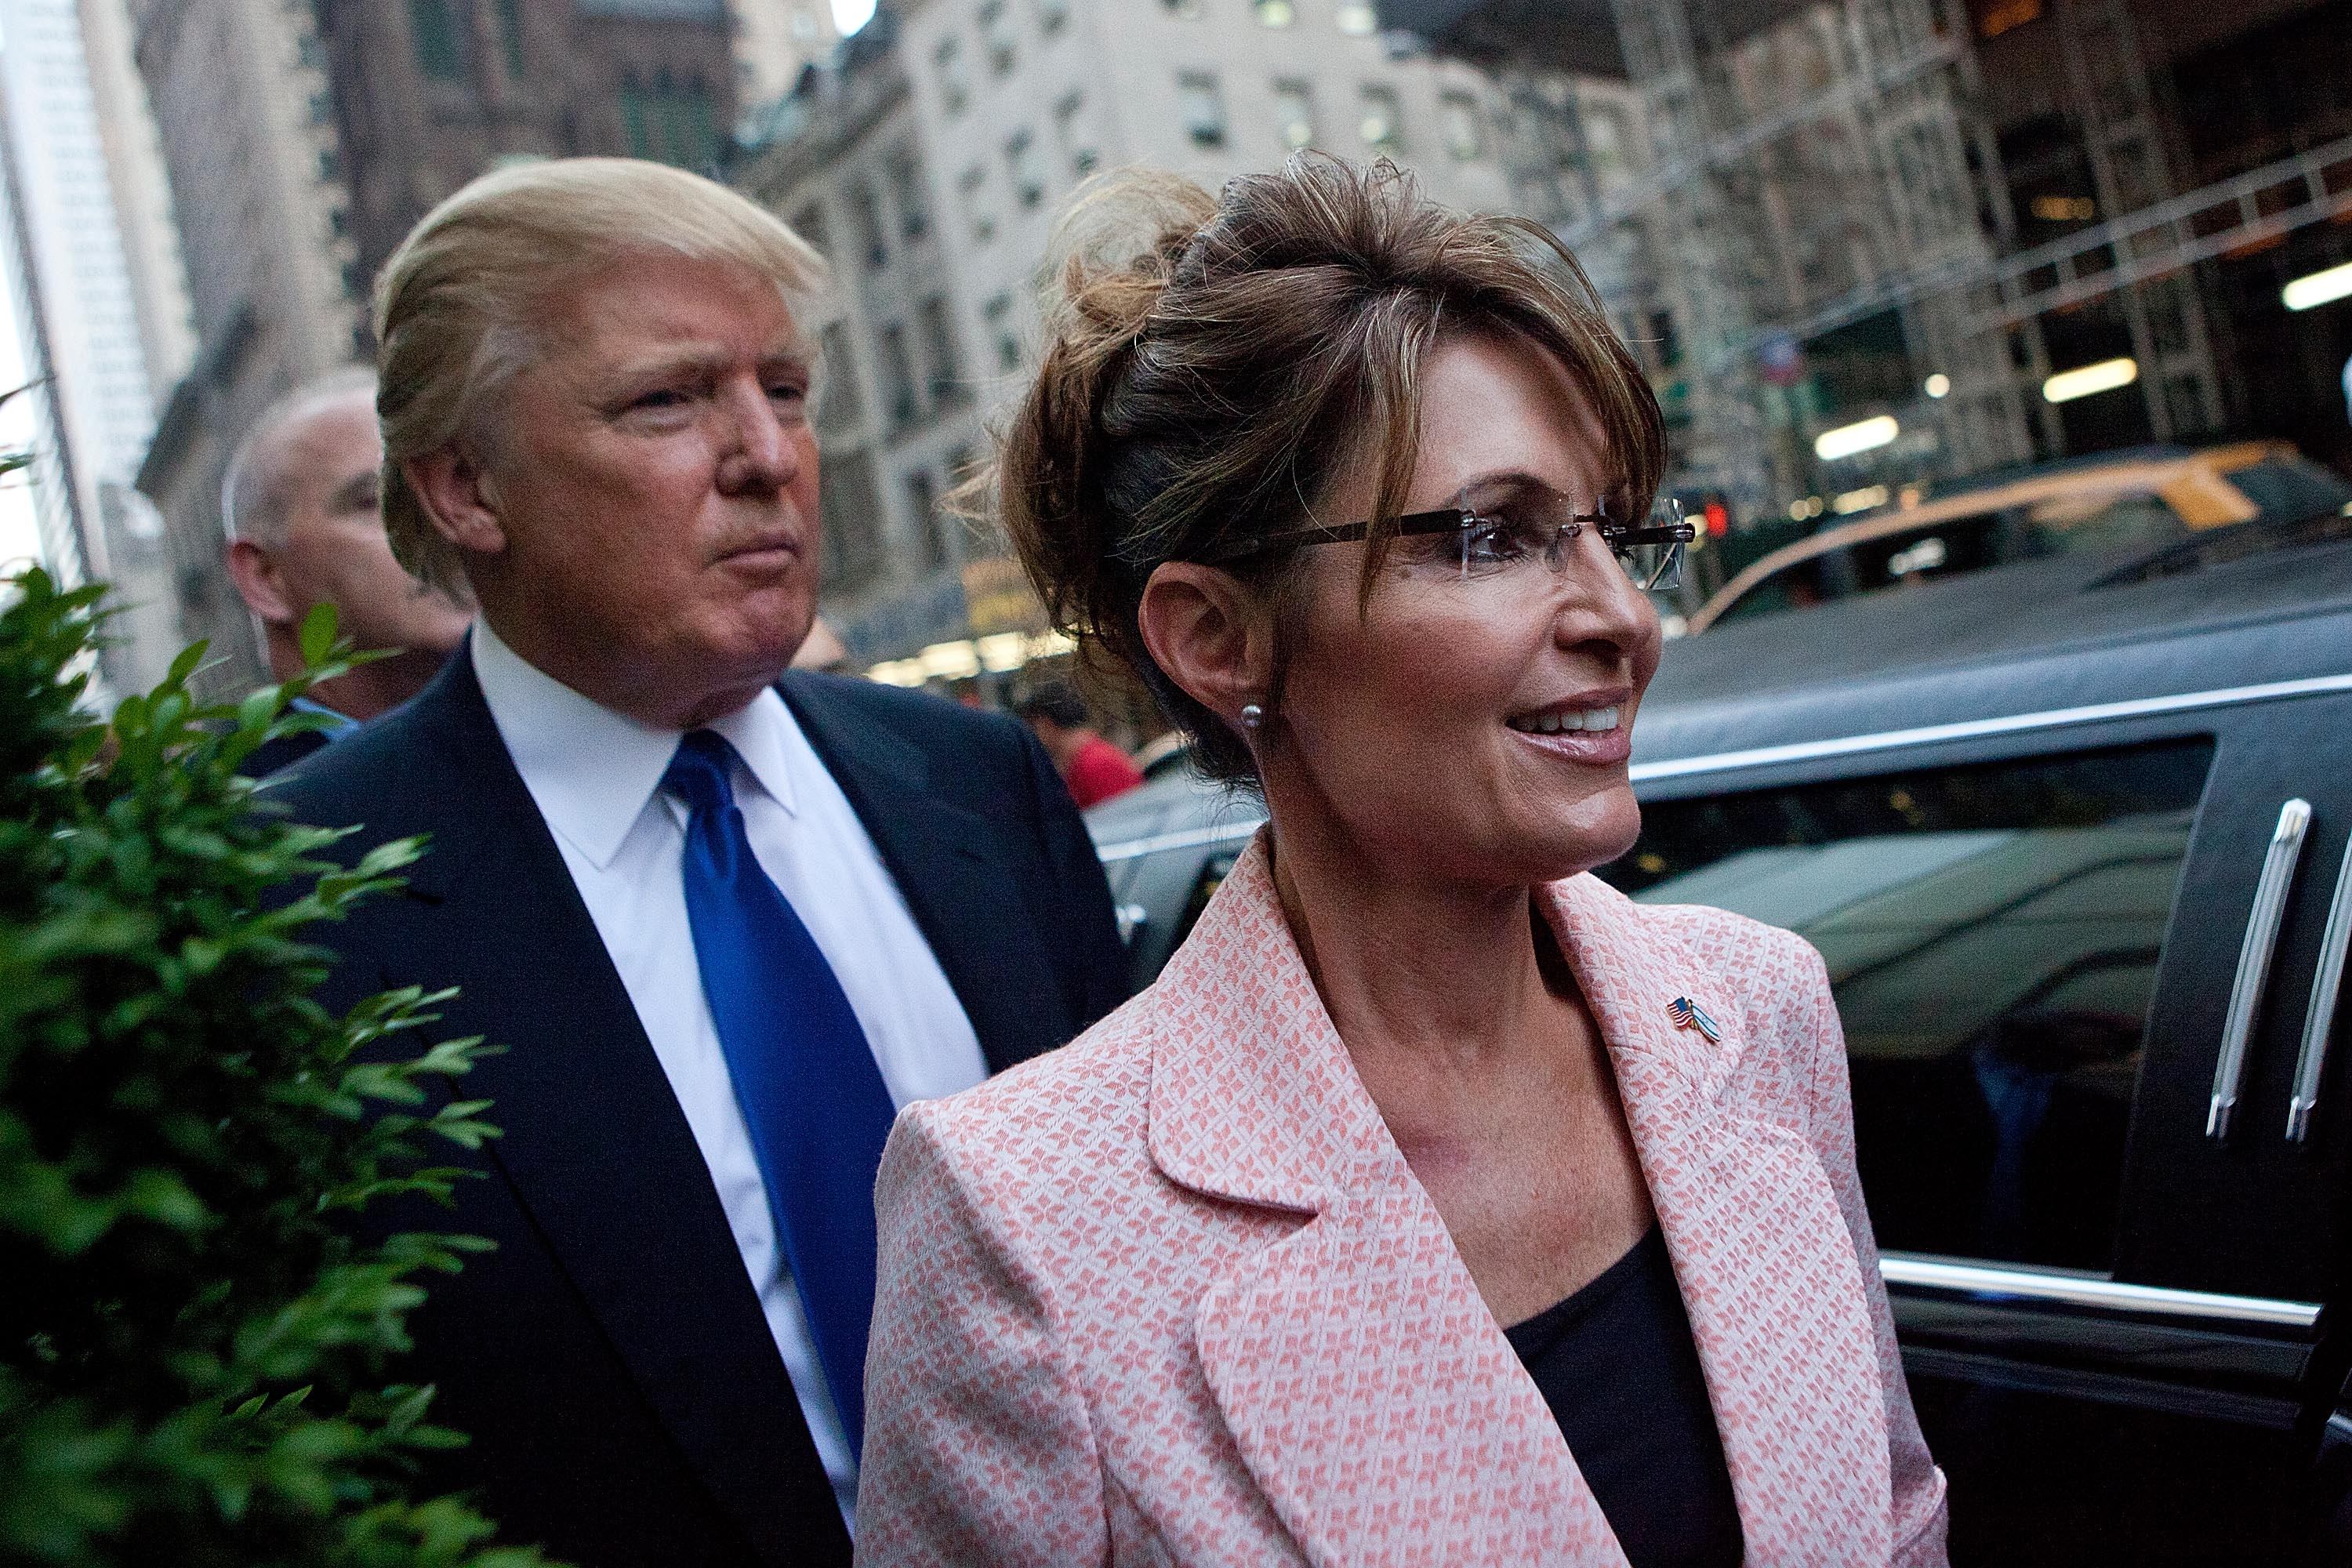 Former U.S. Vice presidential candidate and Alaska Governor Sarah Palin (R), and Donald Trump walk towards a limo after leaving Trump Tower, at 56th Street and 5th Avenue, on May 31, 2011 in New York City.